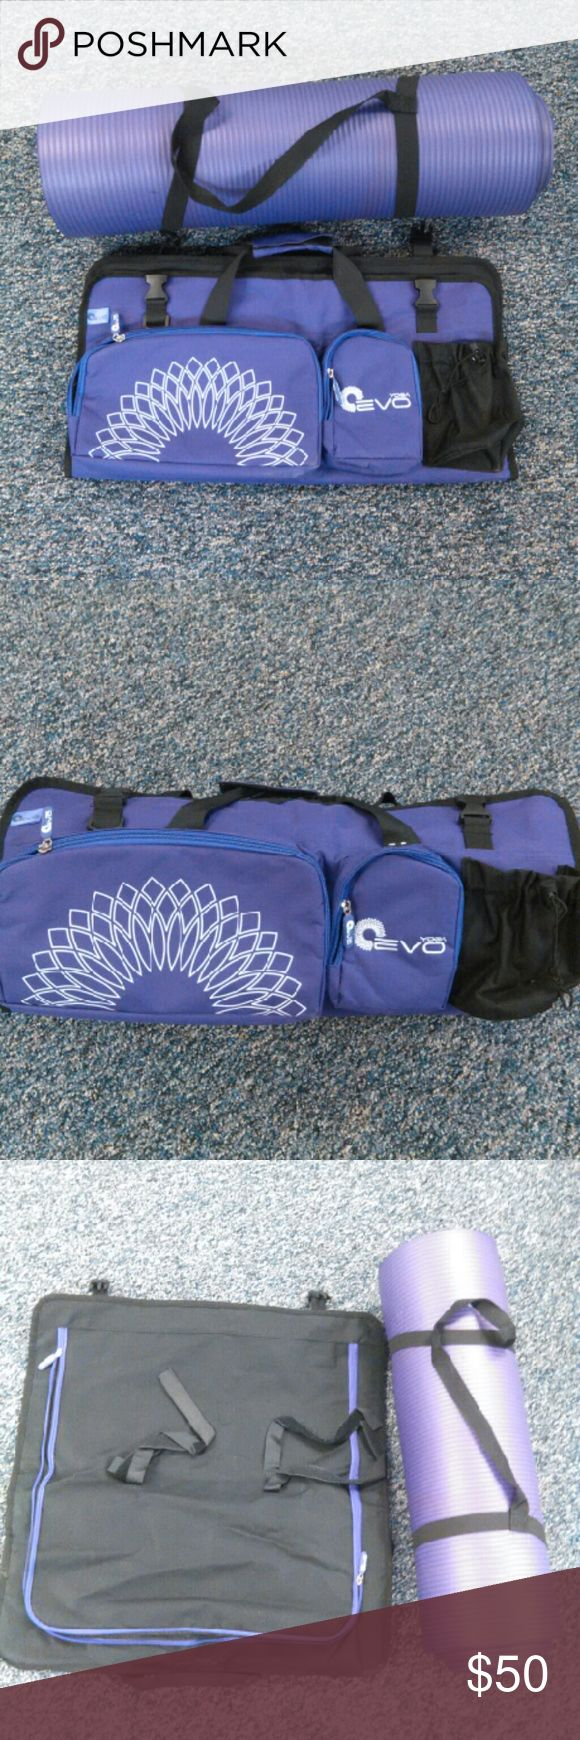 """Yoga mat & carrier EVO carrier for yoga mat, gym clothes etc... FLAMANT purple yoga/nap mat   Carrier: 3 external pockets & 1 bottle holder, adjustable double Velcro straps so you carry your mat.  Mat: approximately 5 1/2'  long x 2' wide x1/2"""" thick. Lightweight from nitrile/buna N rubber foam.  Non slip, purple. Great for Yoga, Pilate's or use for kids sleeping mat. Comes with strap carrier.  Used a few times -very clean Bags Totes"""